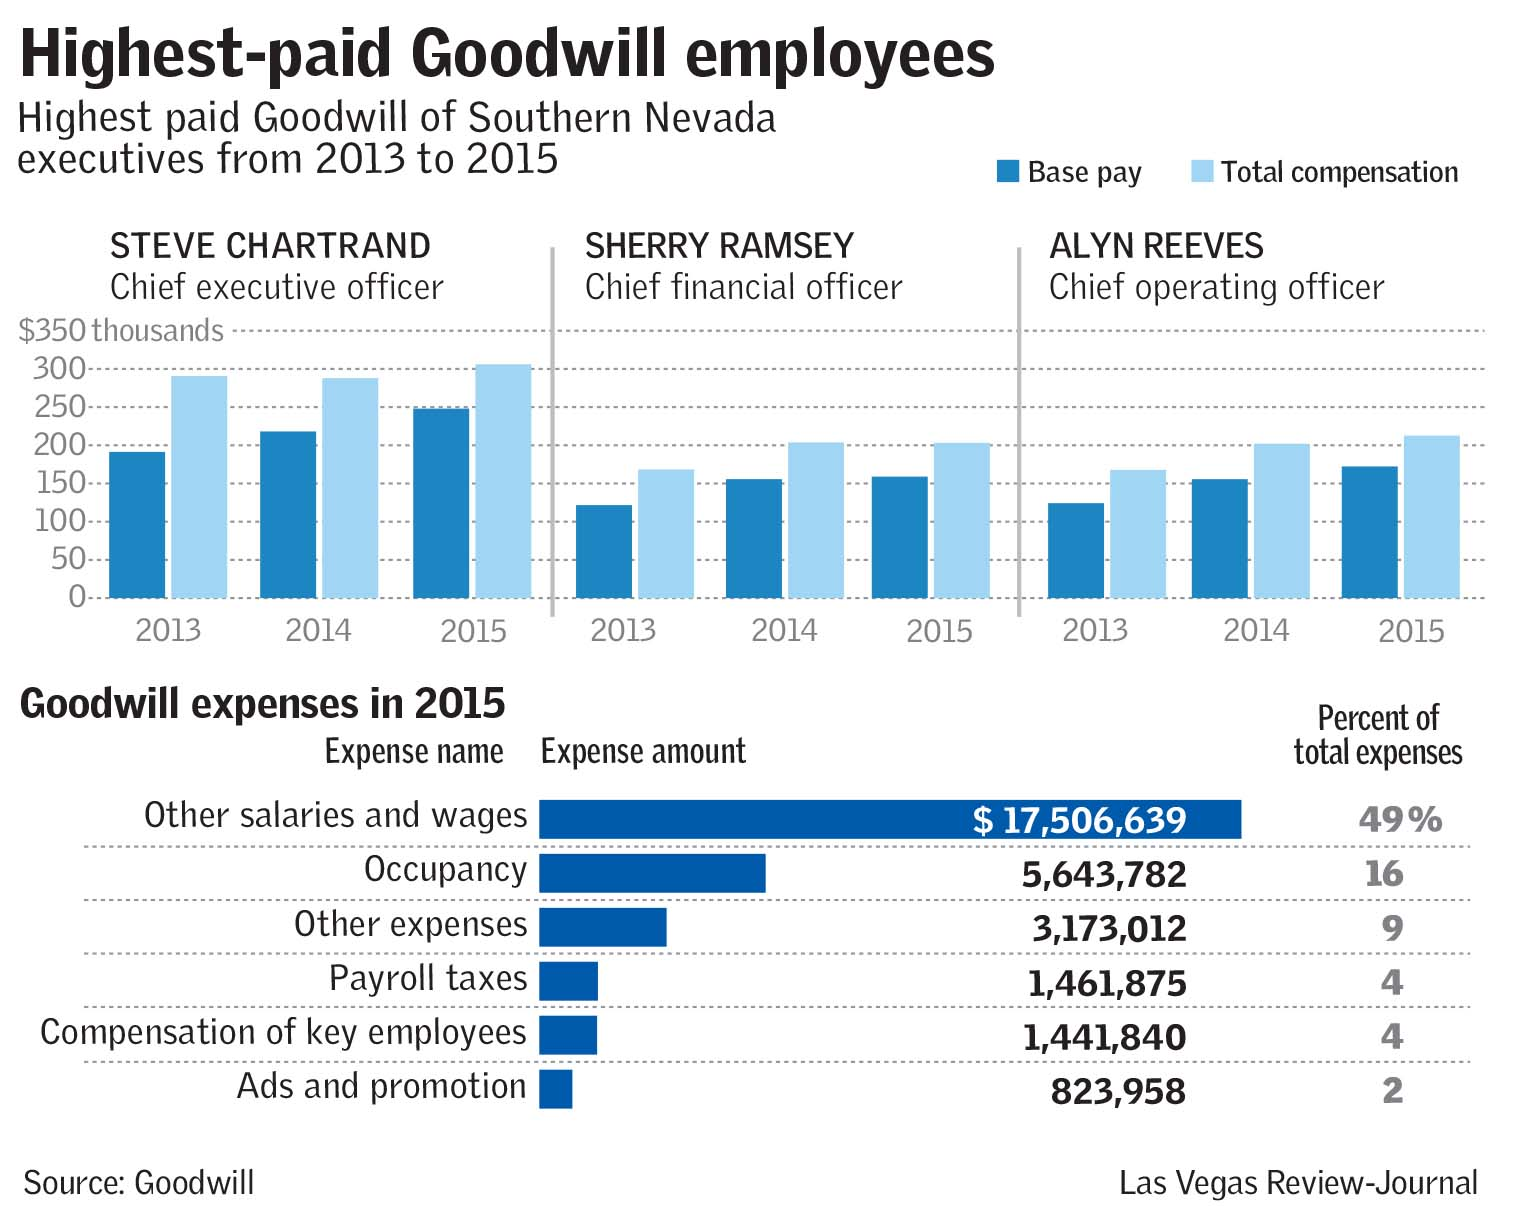 Highest paid goodwill employees